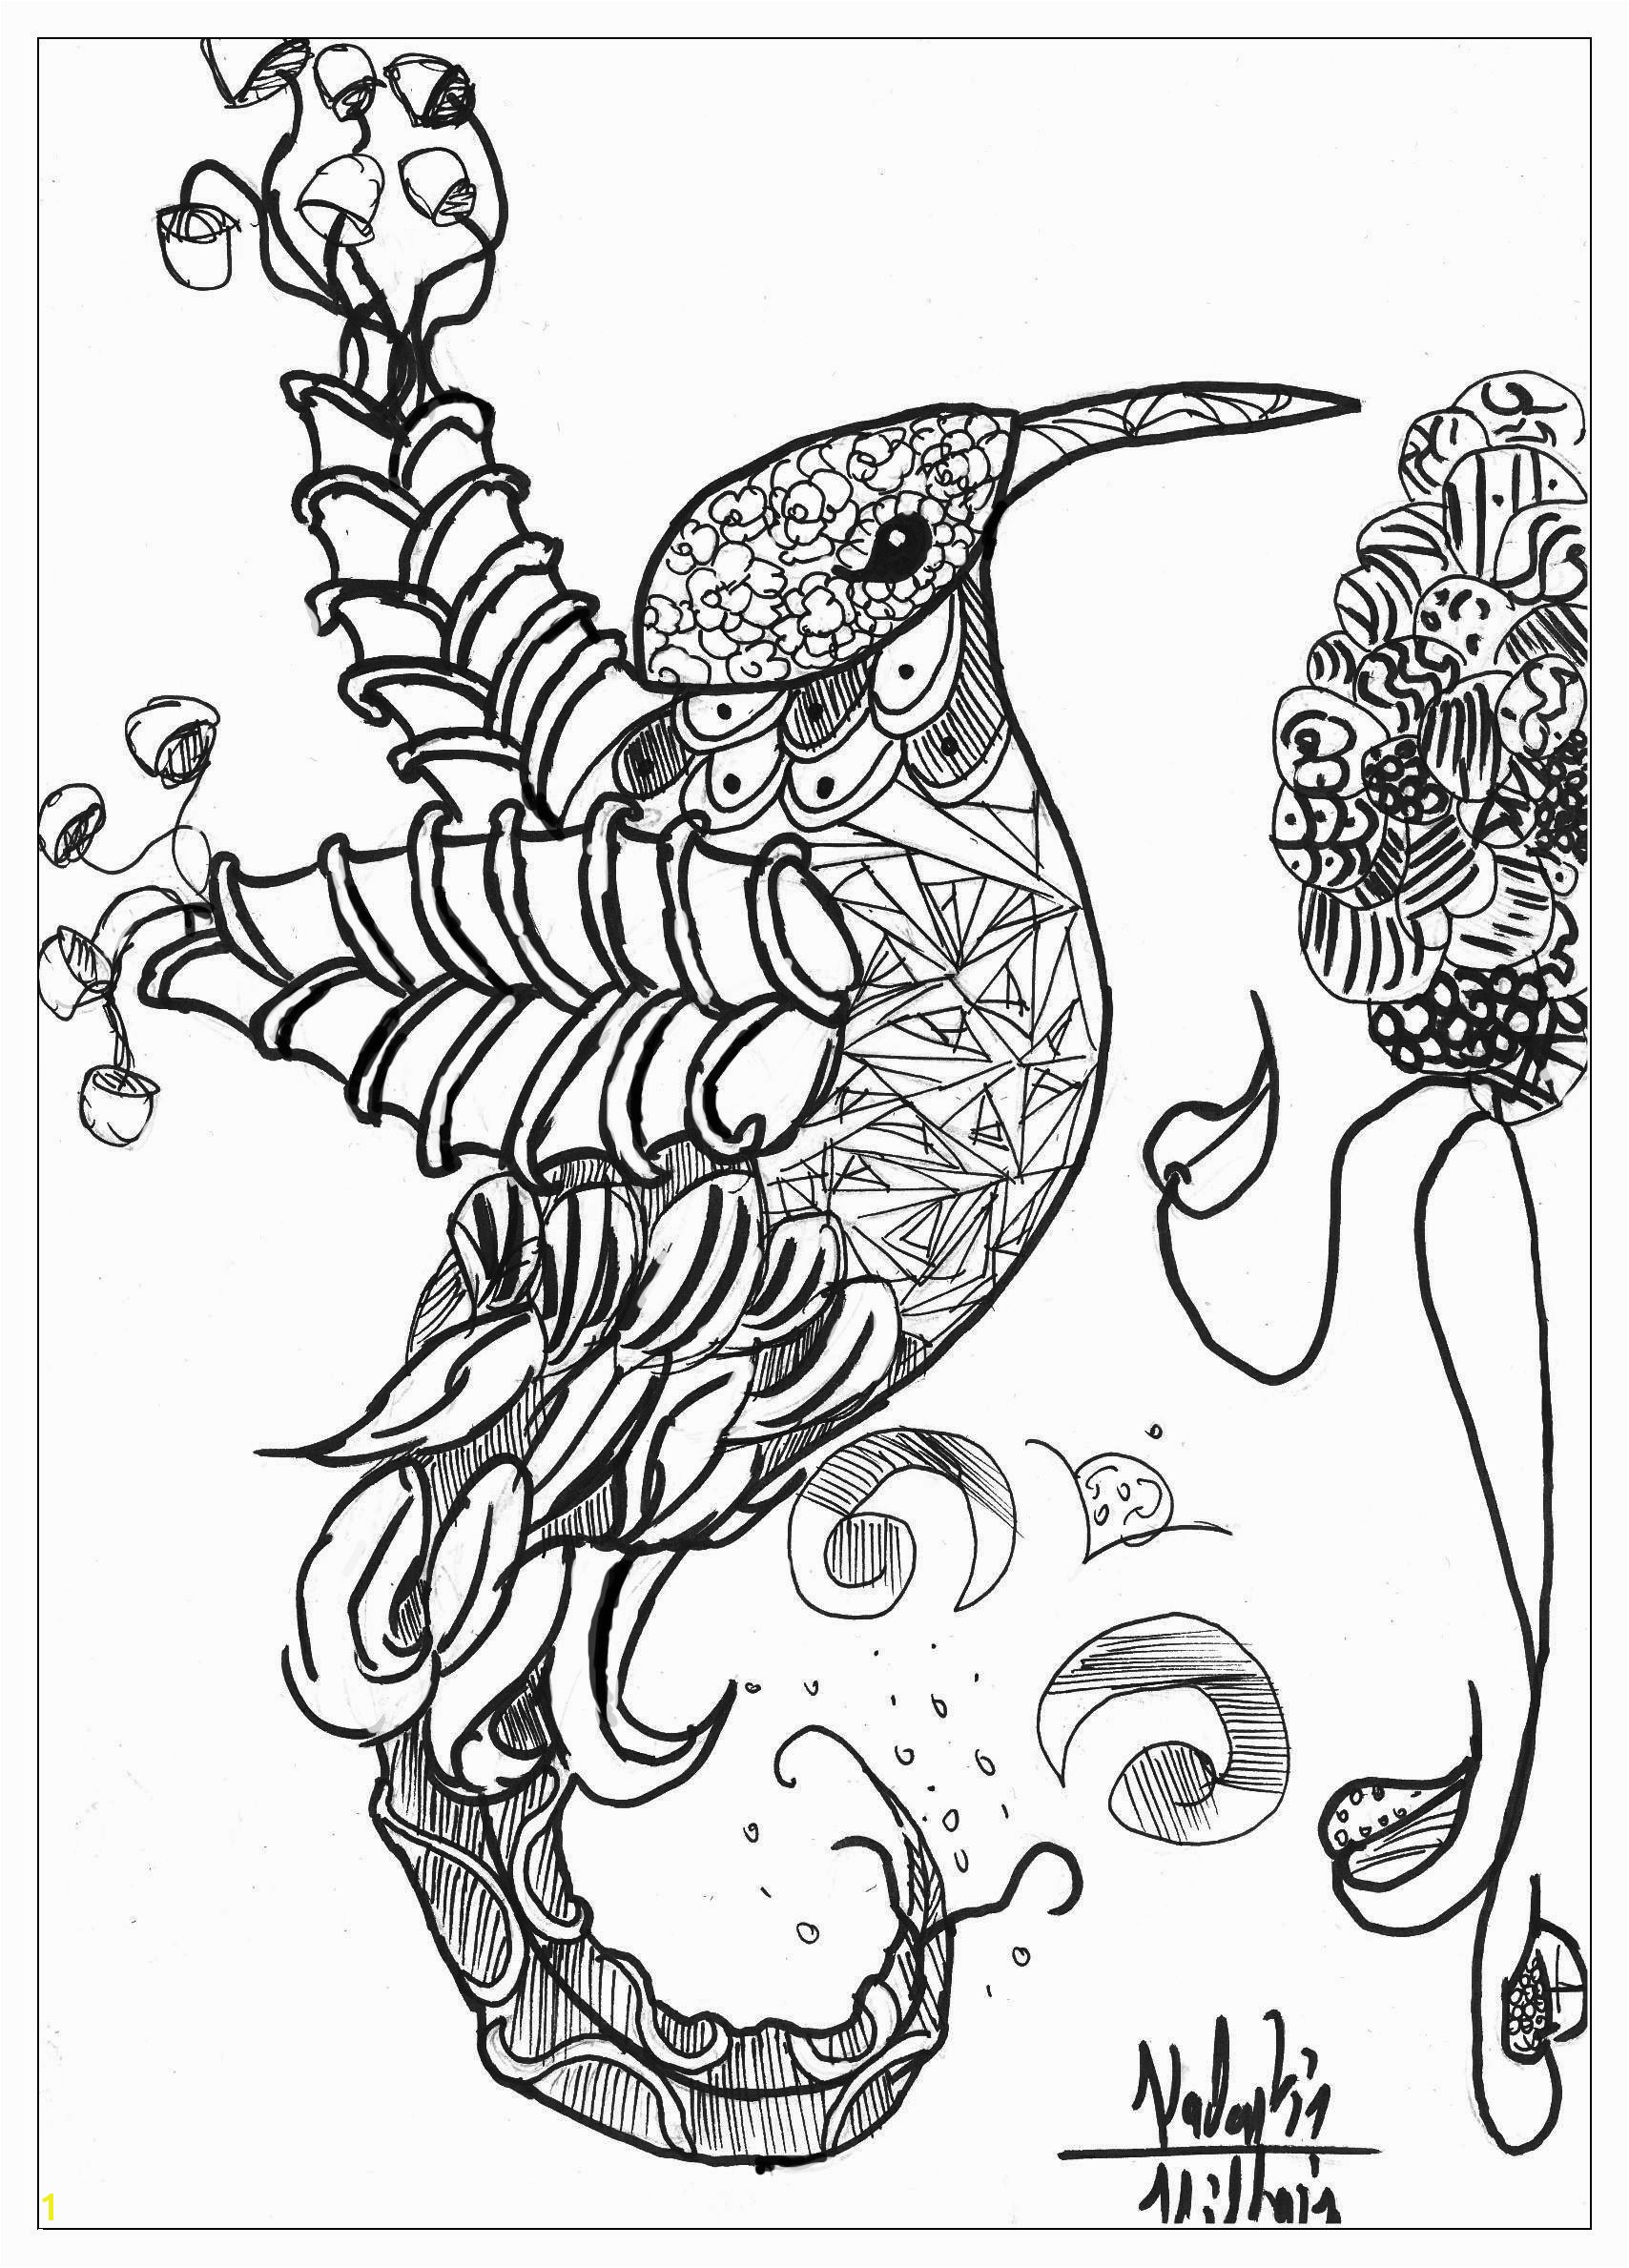 Mandala Coloring Pages For Adults Animals Luxury Mandala Animalmandala Animal Coloring Pages